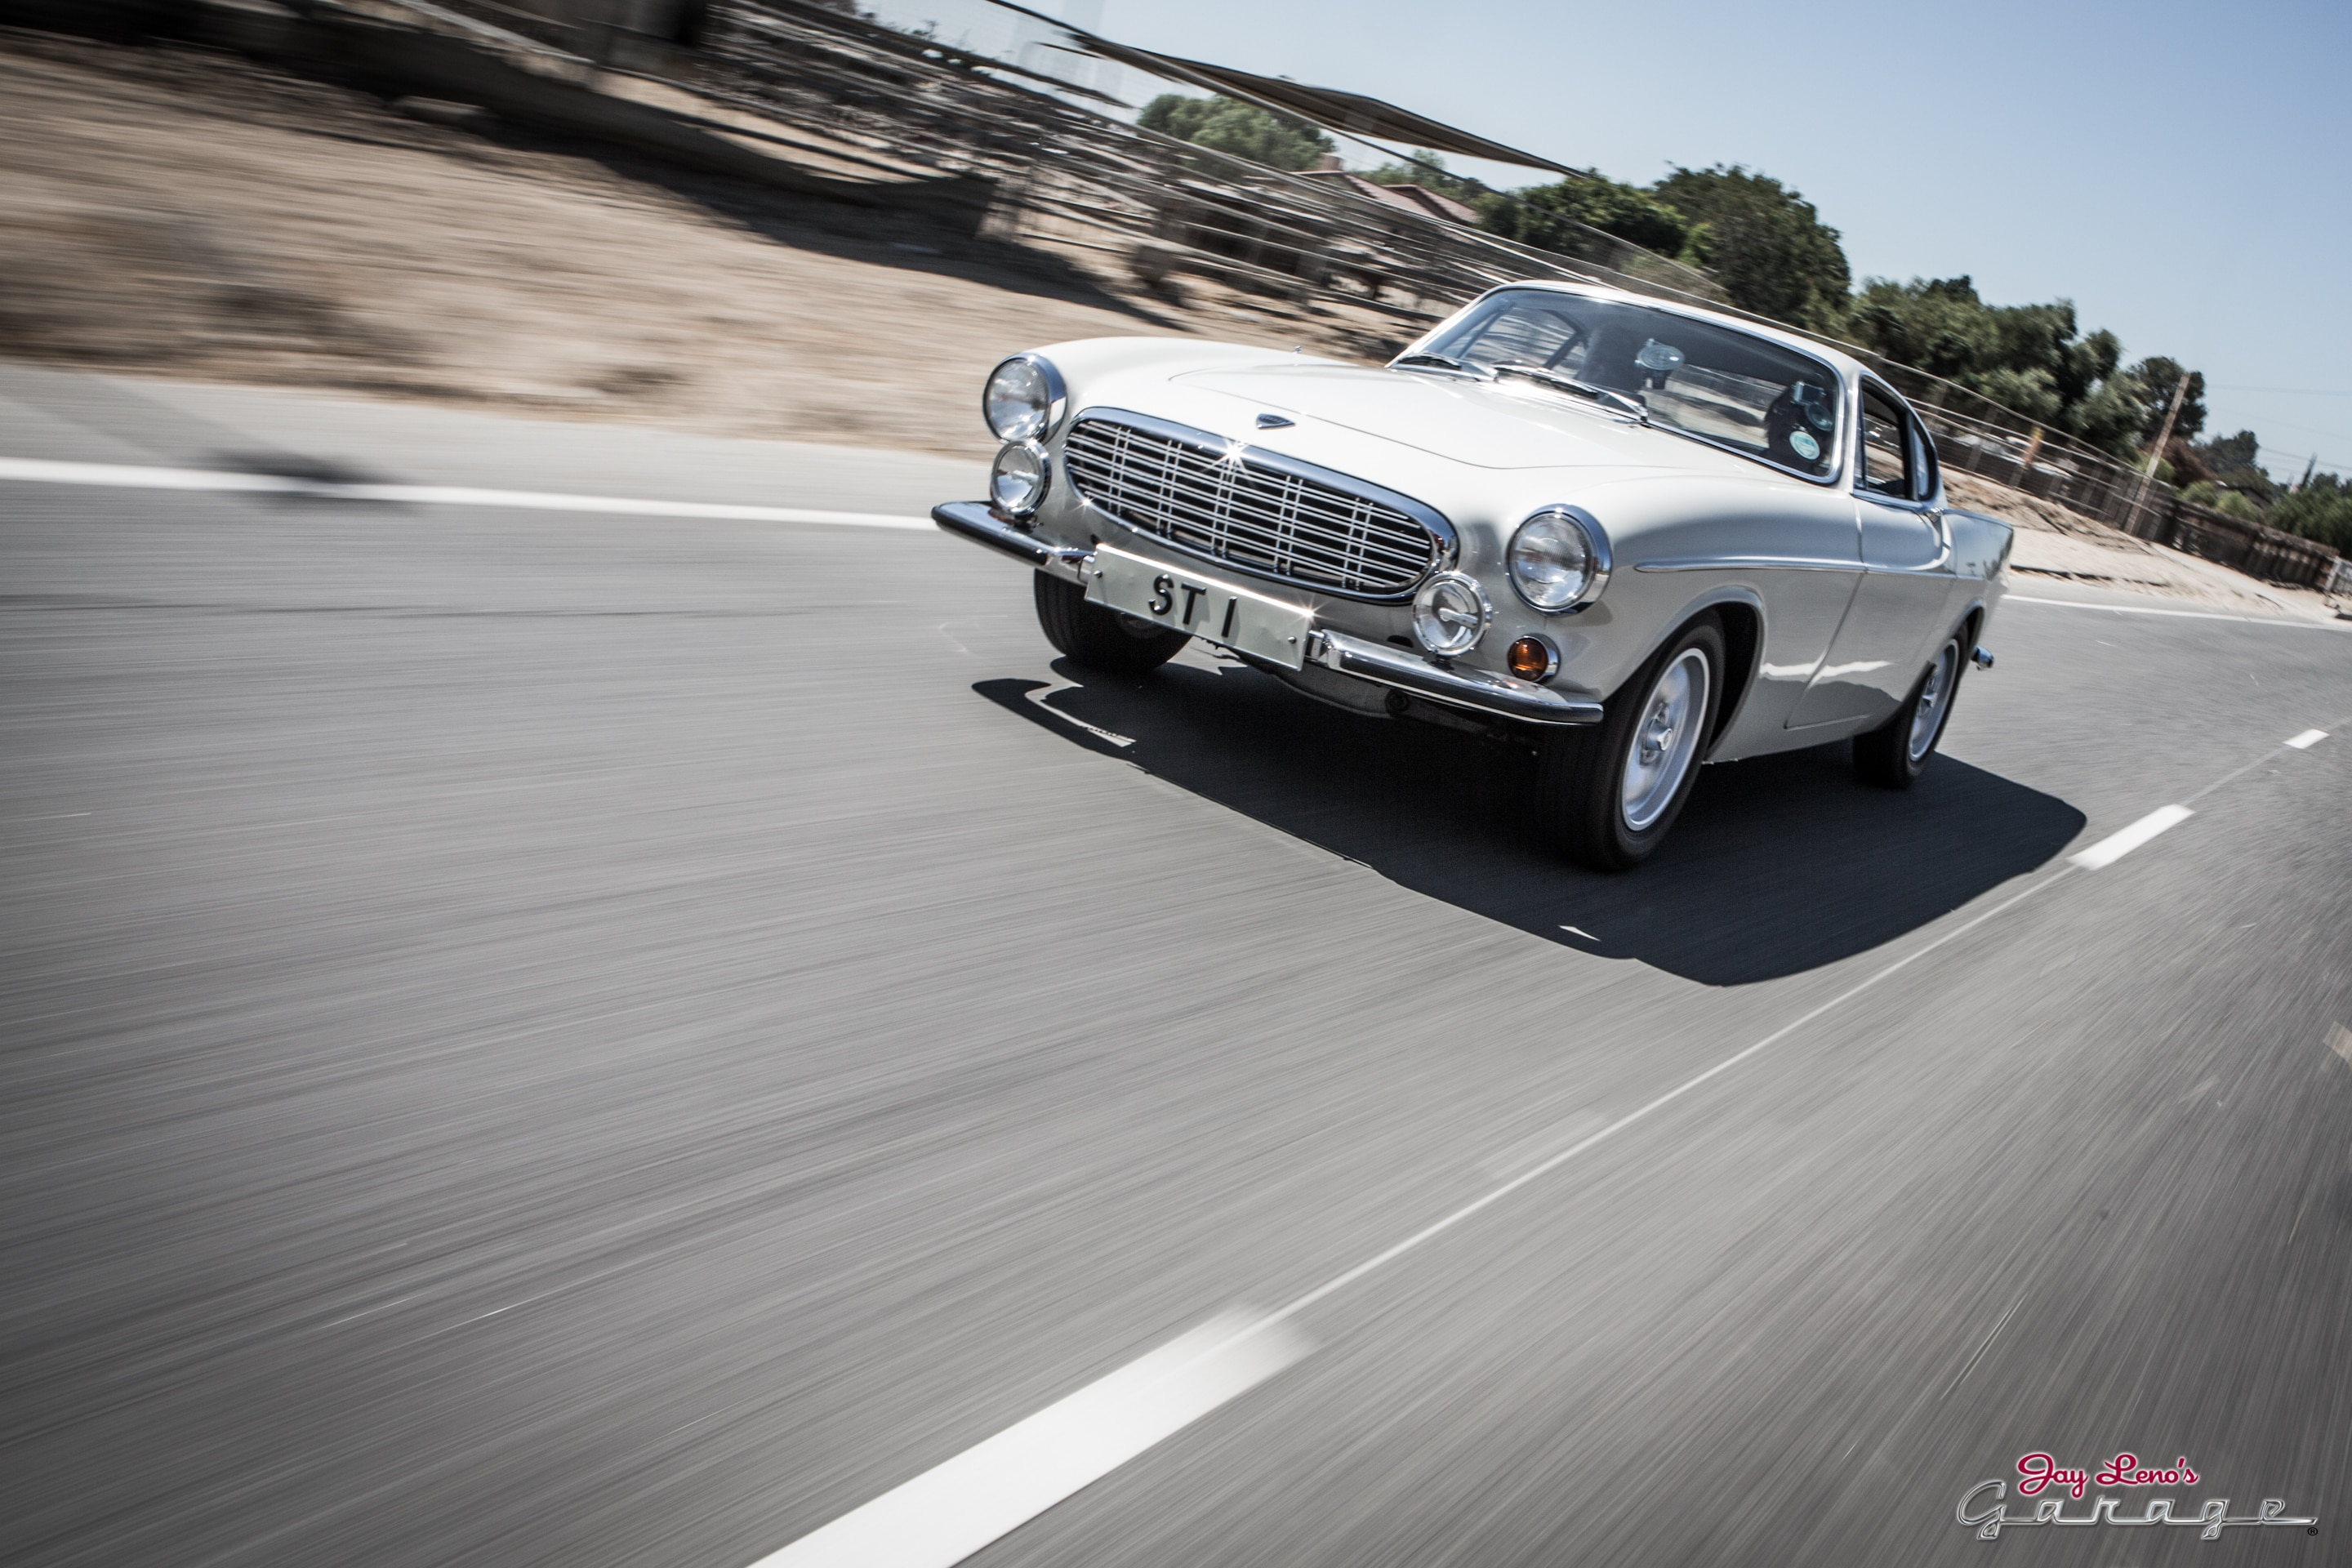 Volvo Garage Amsterdam : Jay leno s garage volvo p s photo nbc